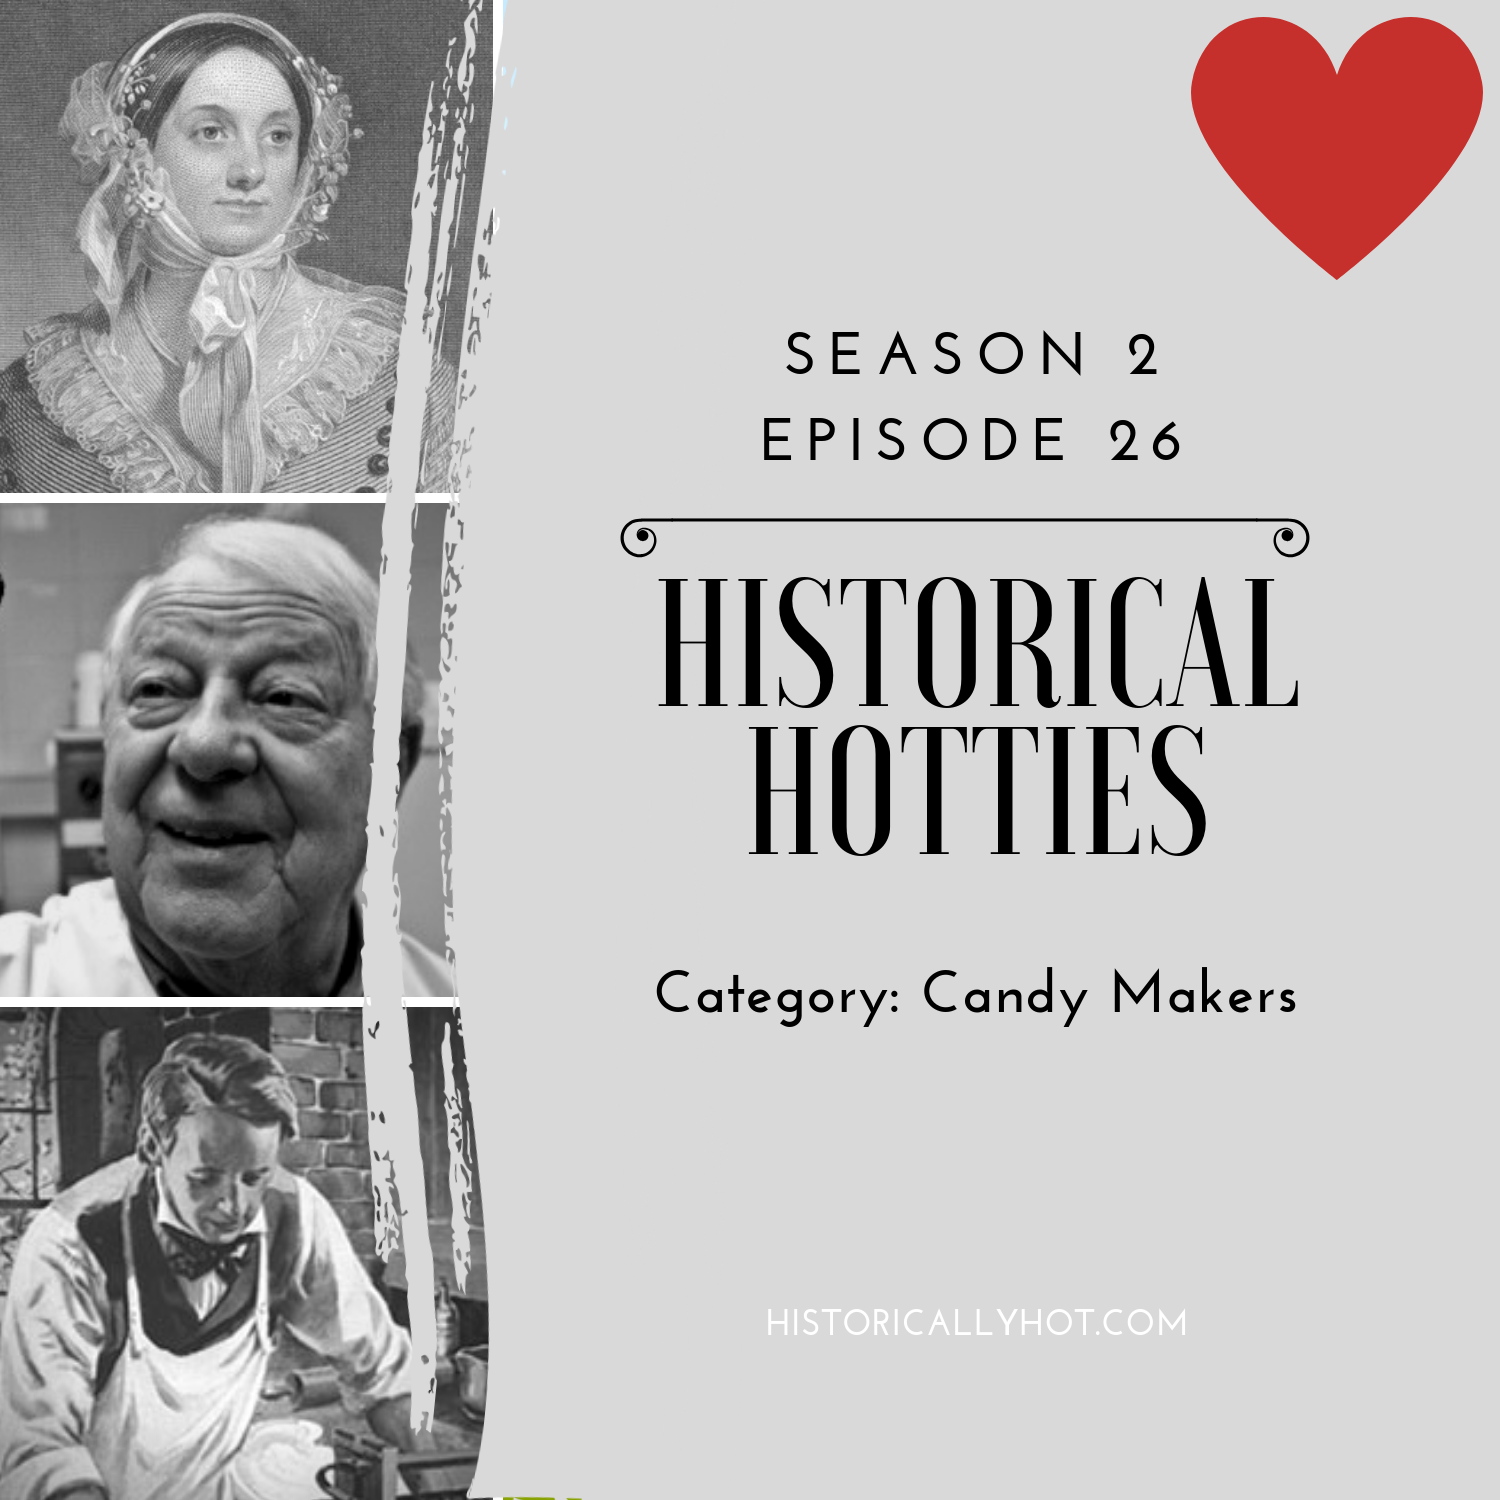 historical hotties candy makers